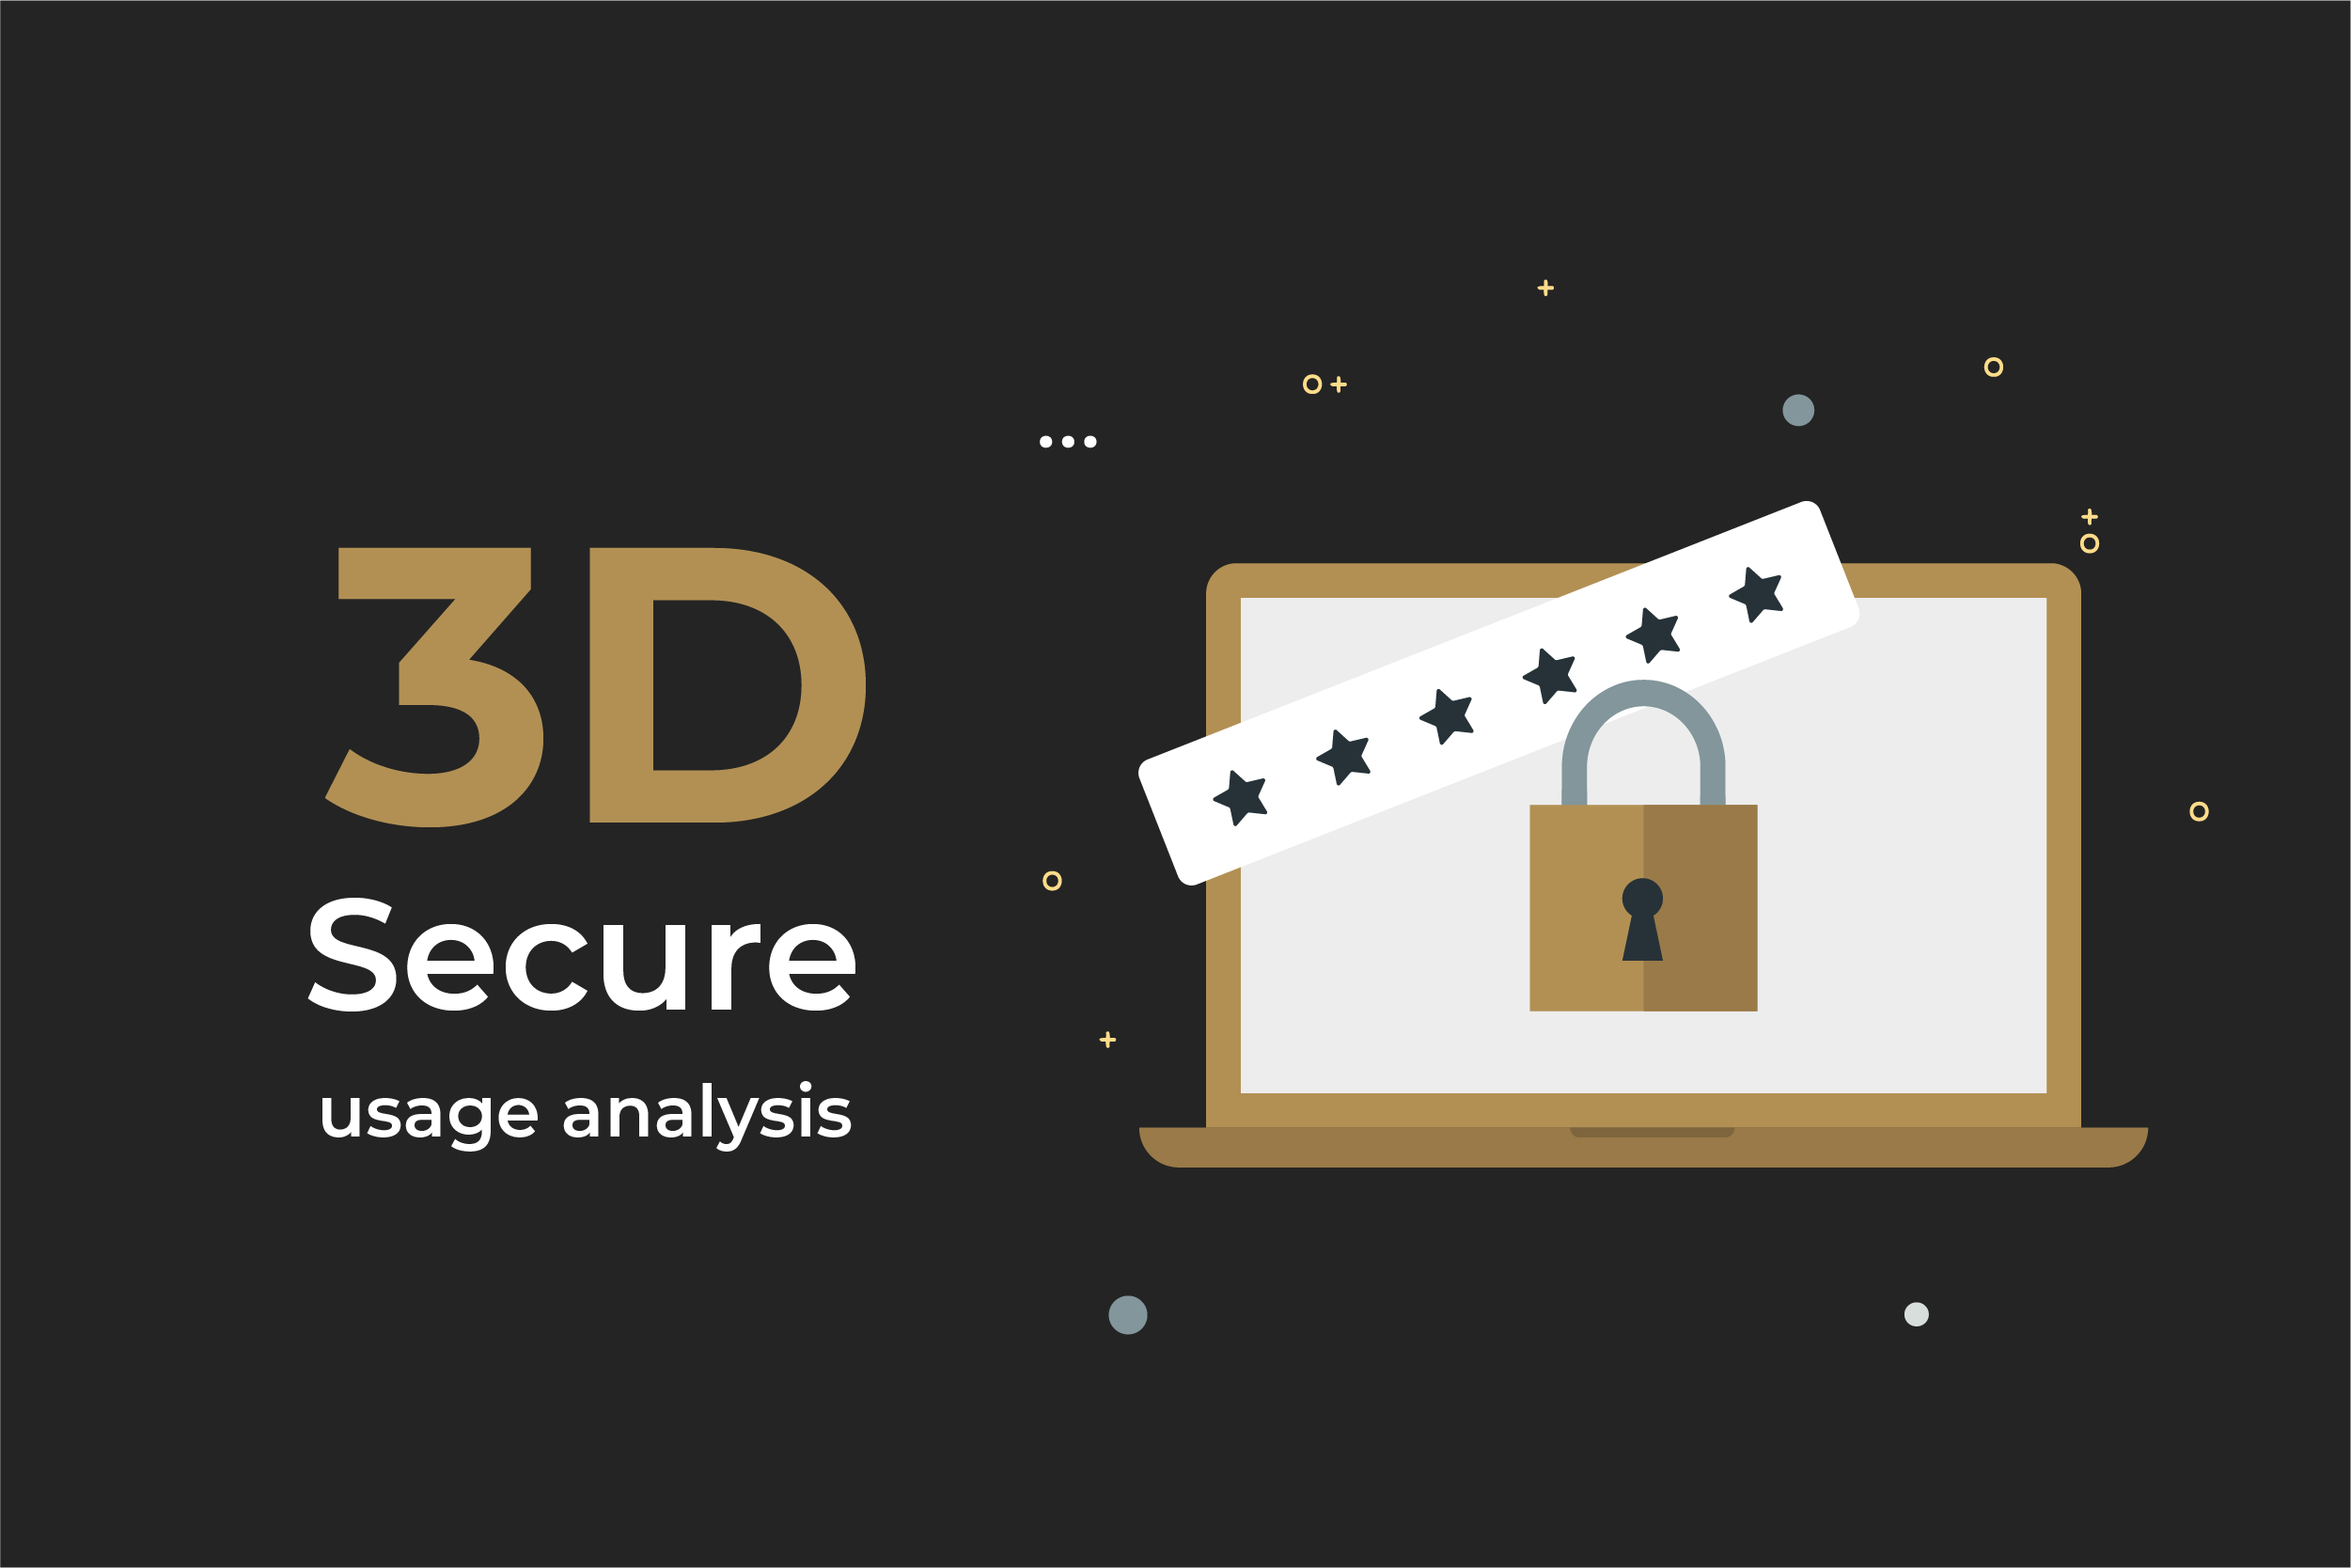 Maxpay allows merchants to analyze the 3D Secure usage